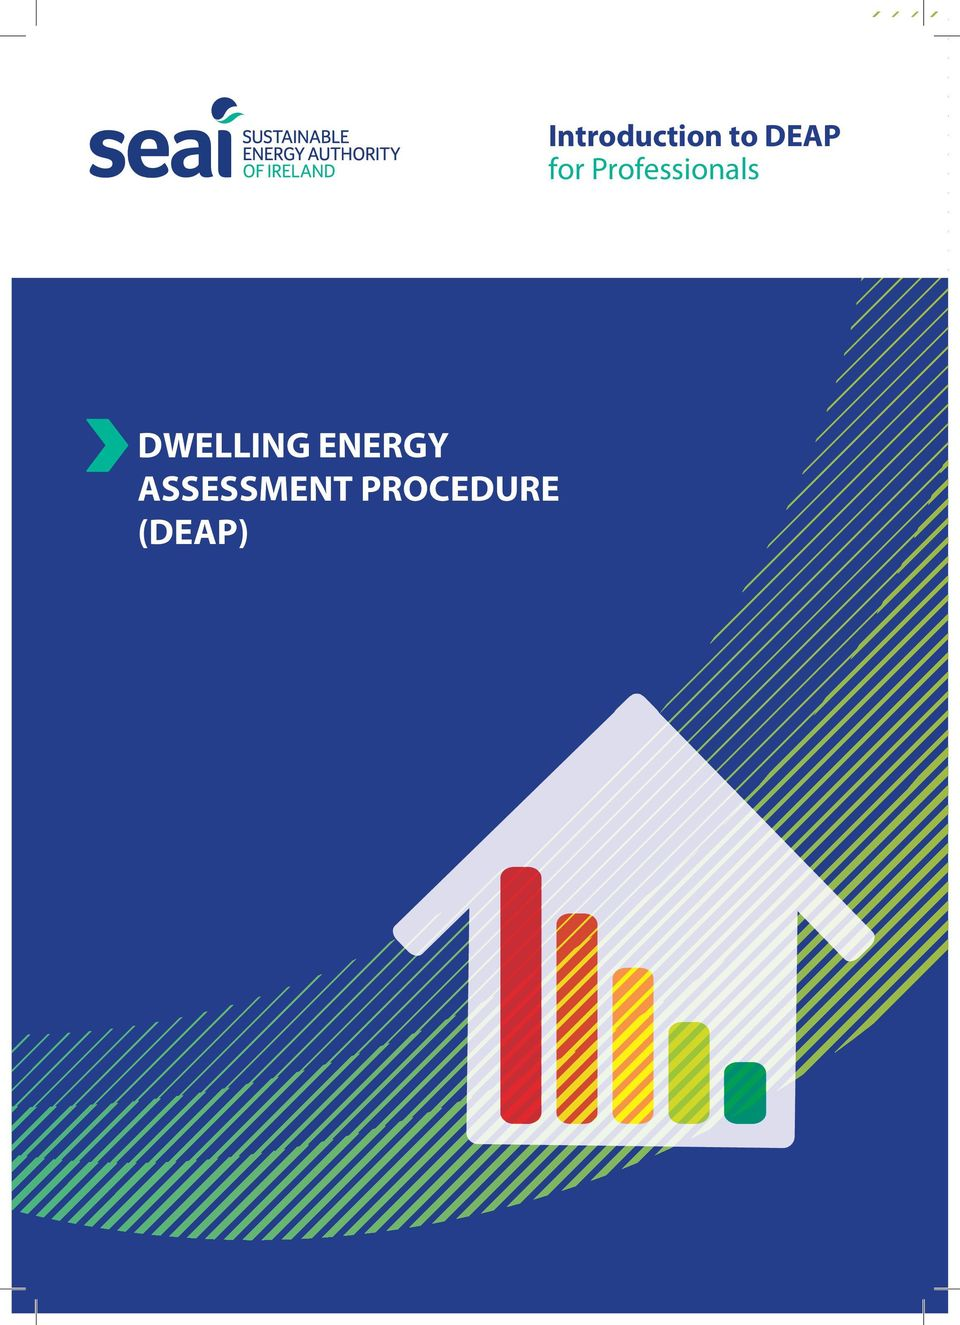 DWELLING ENERGY ASSESSMENT